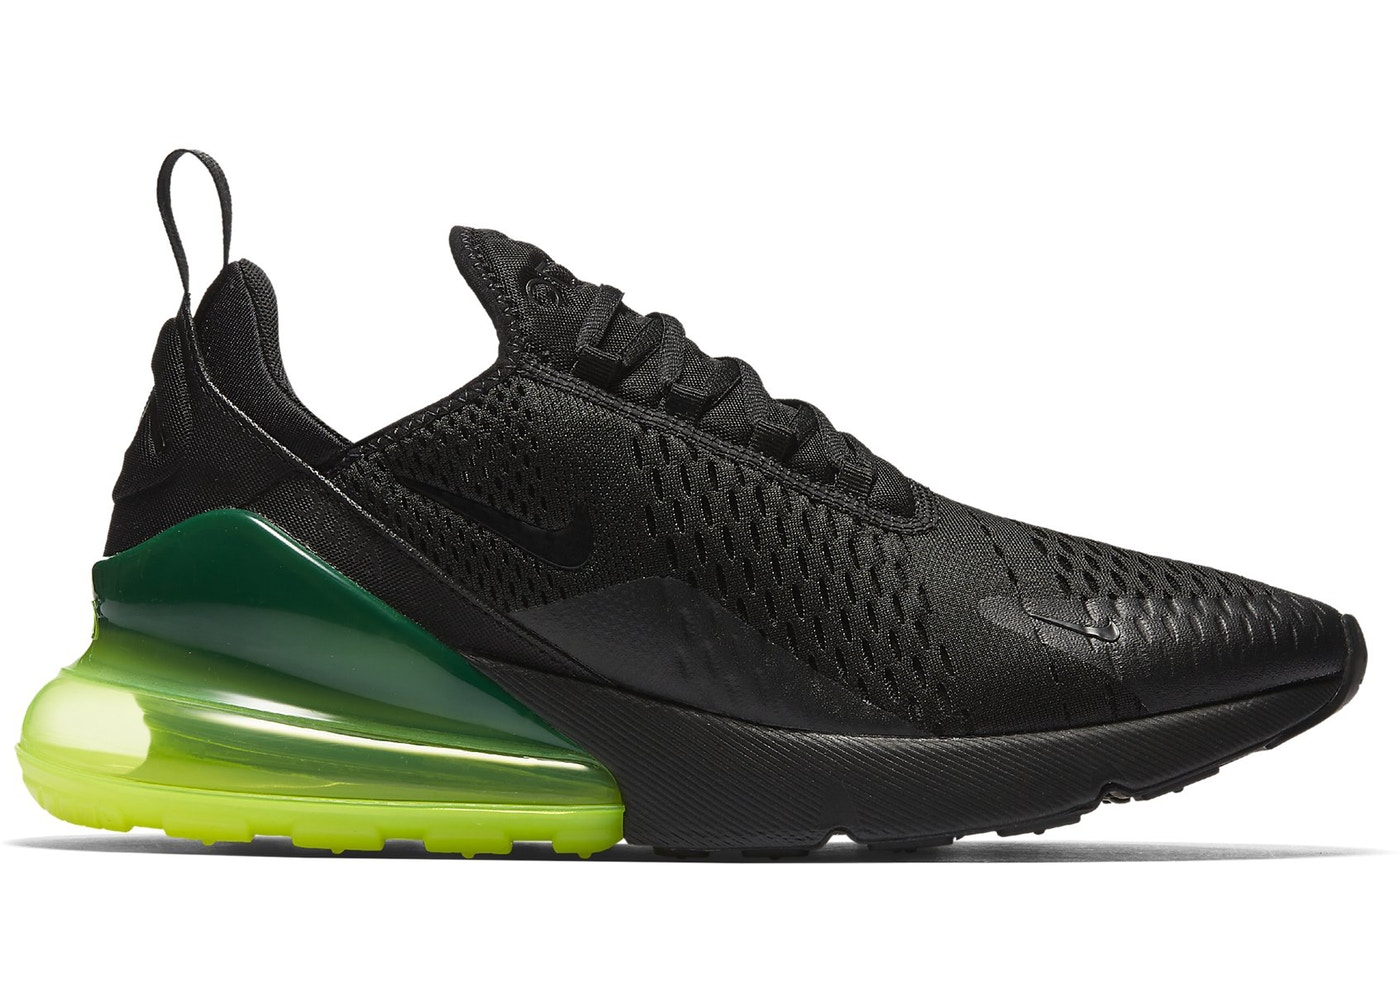 4a545abf85 Air Max 270 Black Volt - AH8050-011